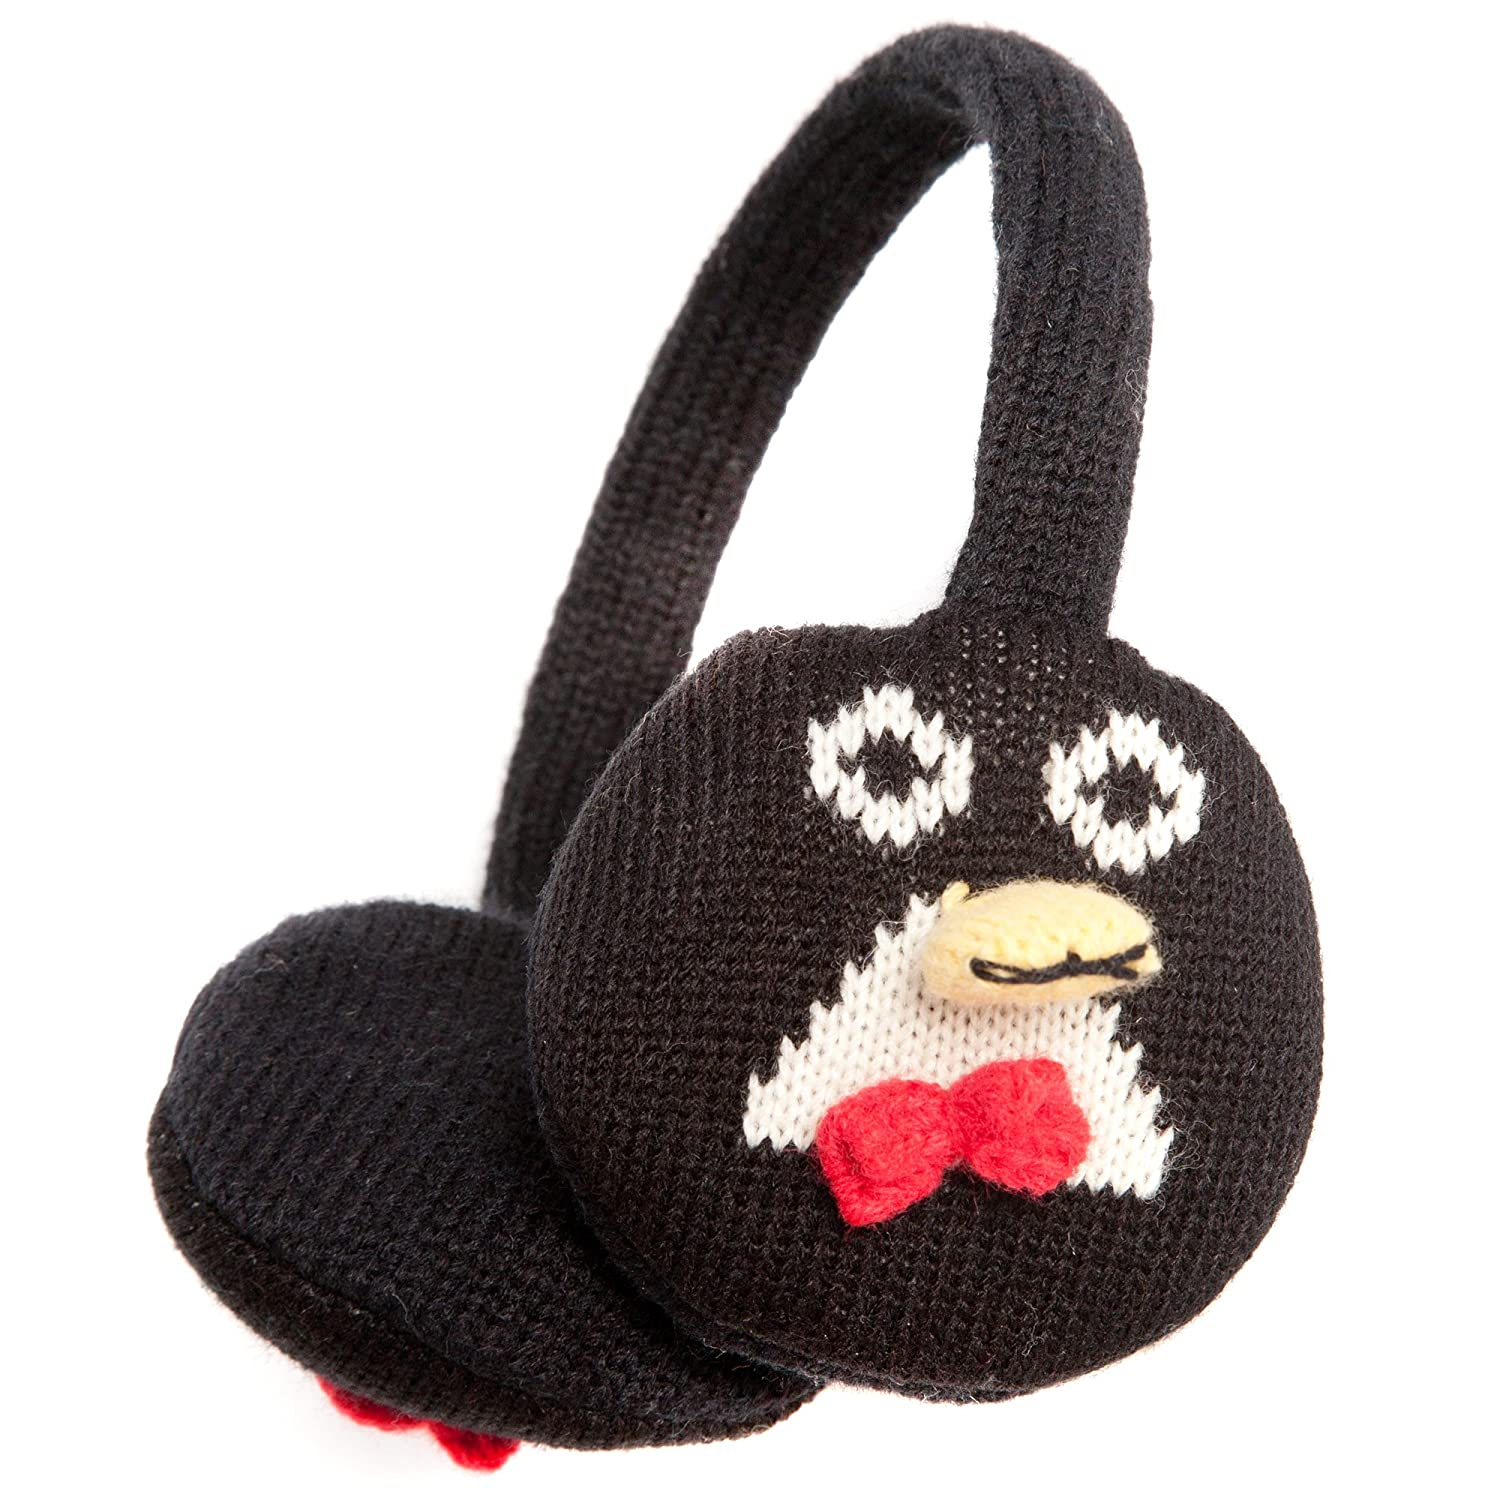 Cute Black and White Penguin Style Ear Muffs with bowtie - Onesize fits most